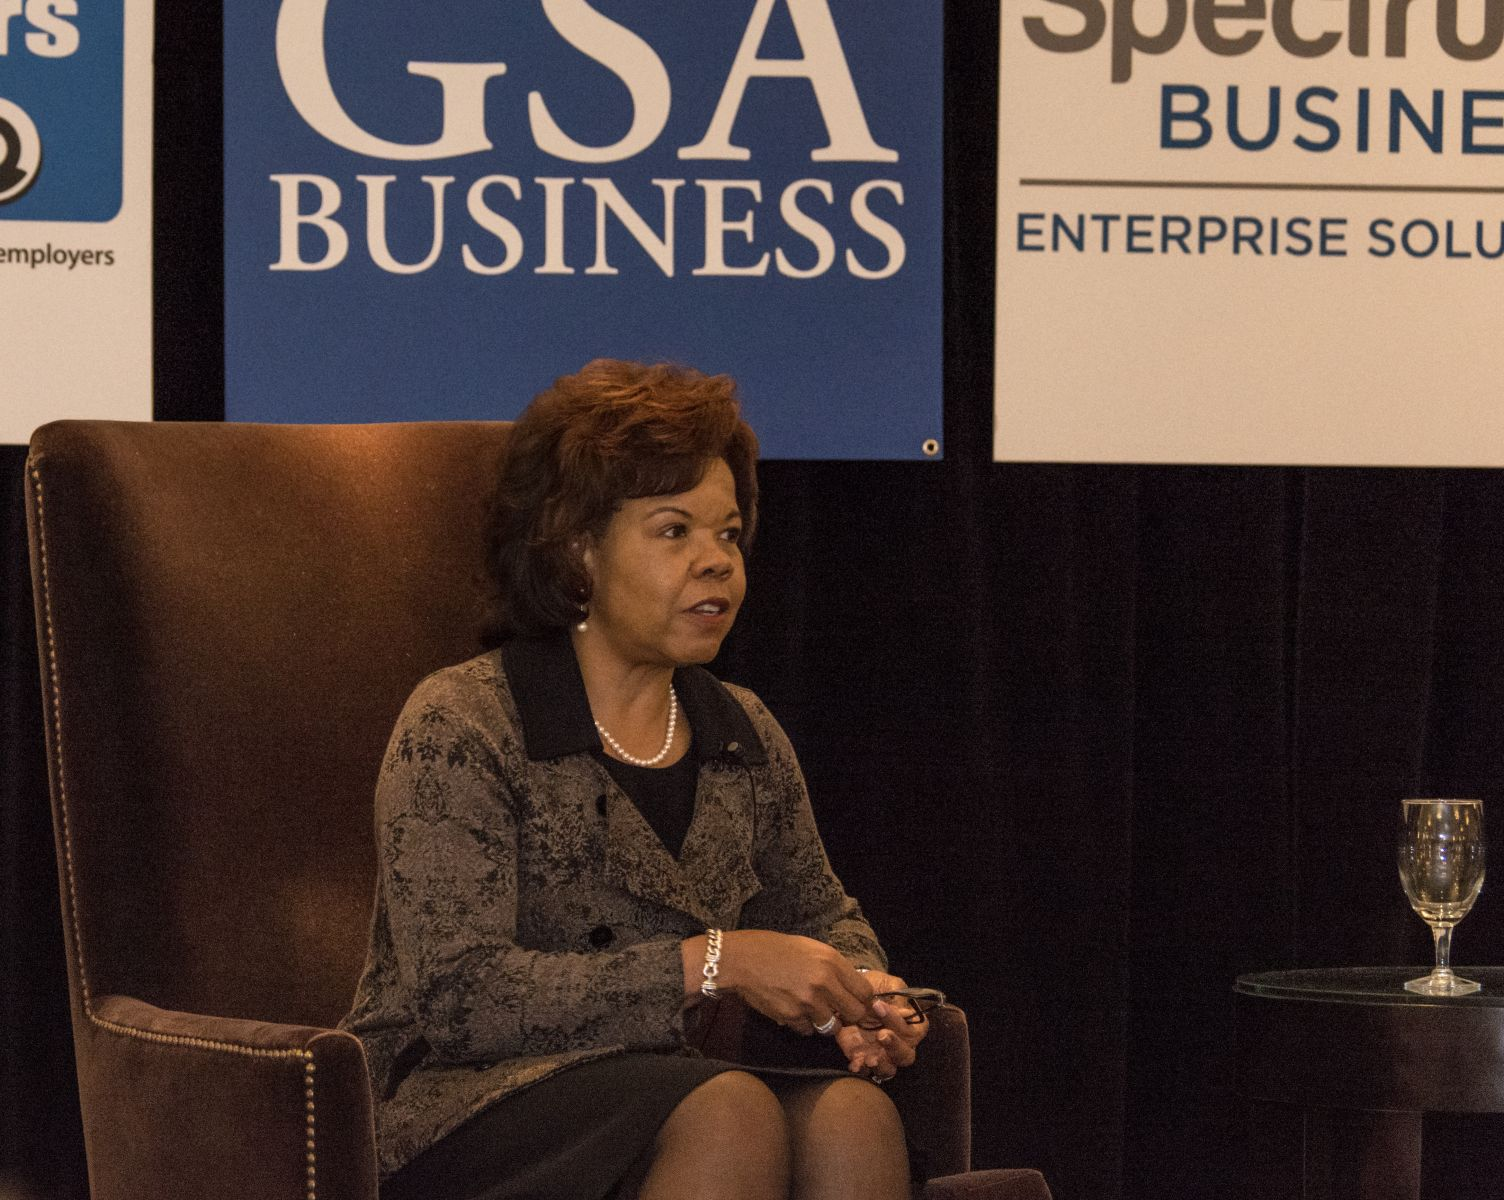 Brenda Thames, vice president for academic and faculty affairs at GHS and incoming chairwoman of the Greenville Chamber of Commerce Board of Directors gave the keynote address at the GSA Business Report Power Event in Greenville. (Photo by Kathy Allen)